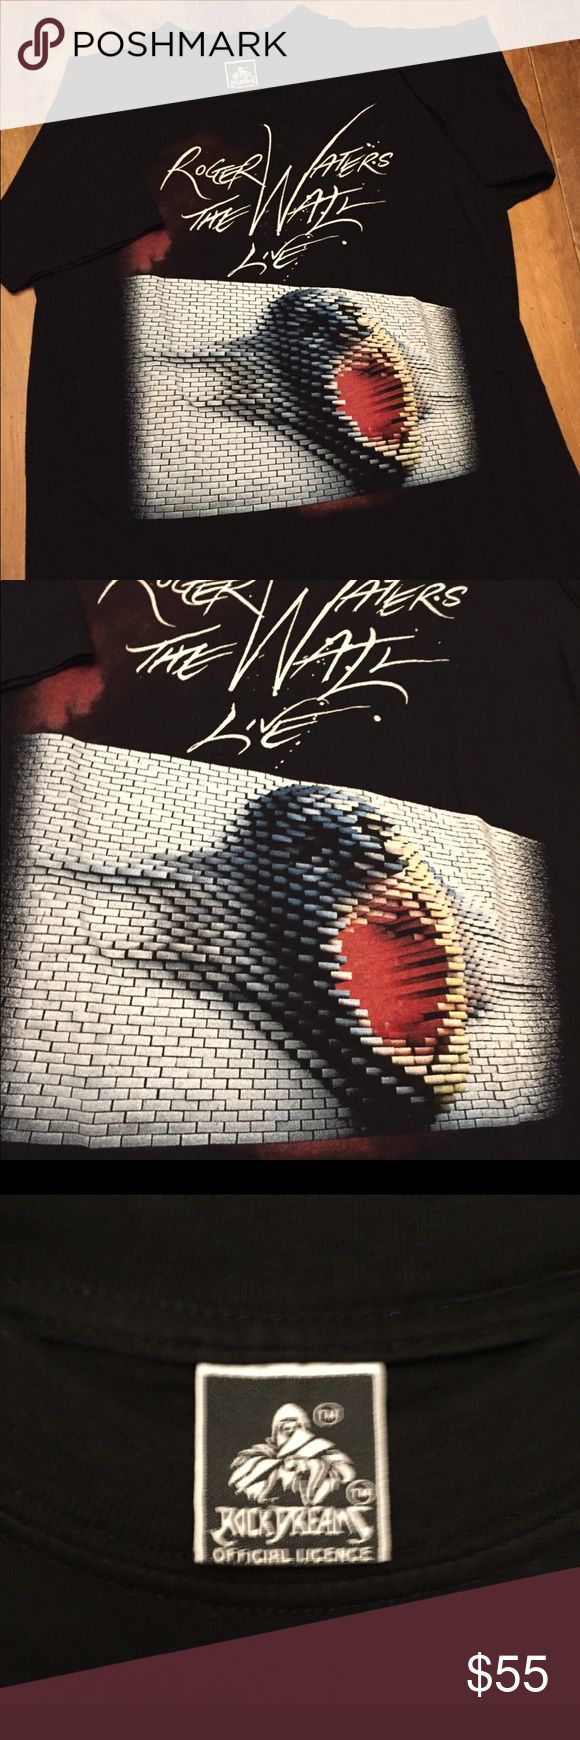 Roger Waters Pink Floyd The Wall concert T shirt Awesome retro shirt in excellent condition Shirts Tees - Short Sleeve